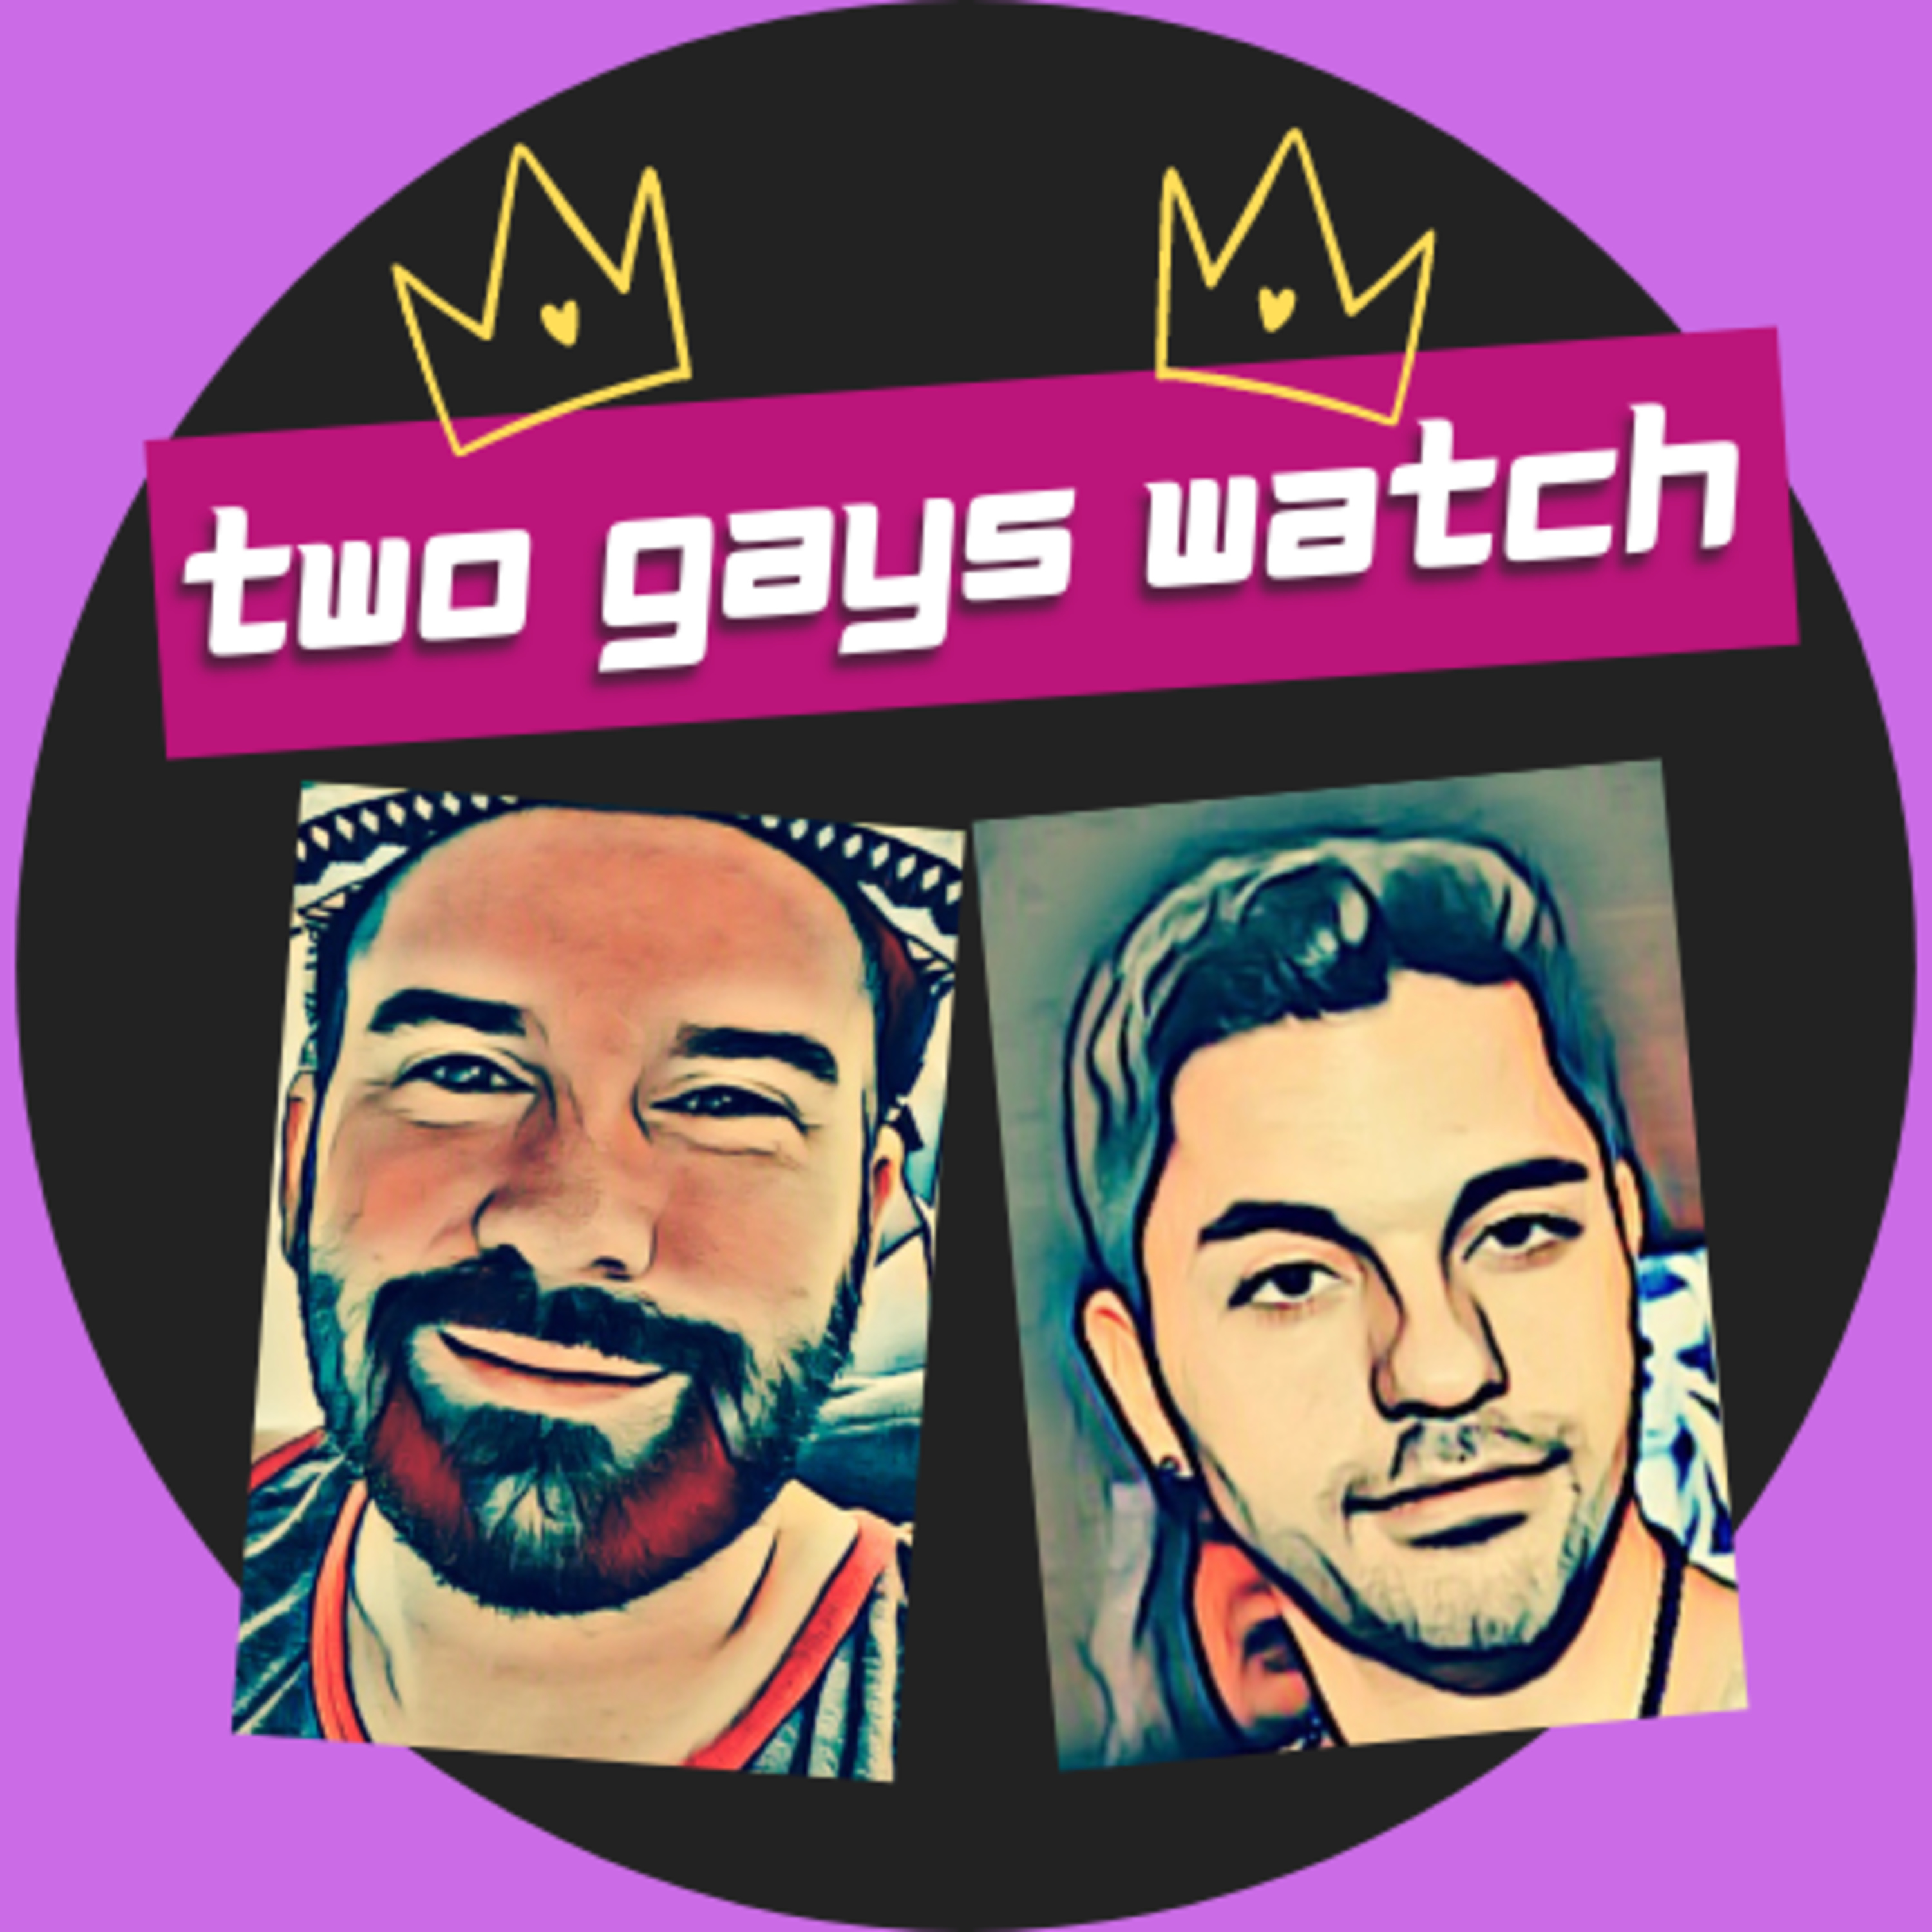 34. An official announcement from The Two Gays!